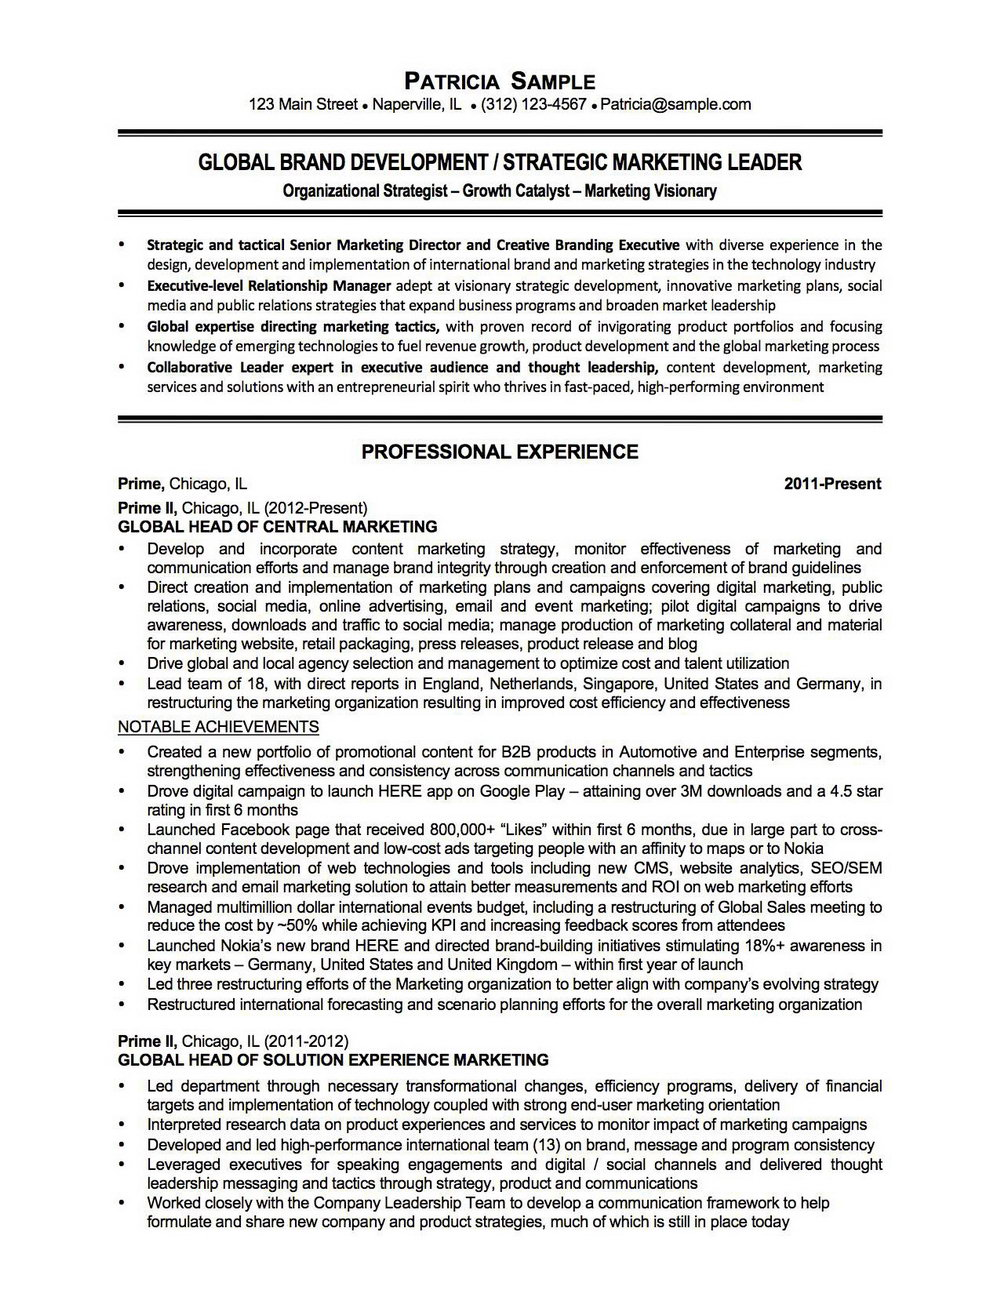 Resume Writing Services Chicago